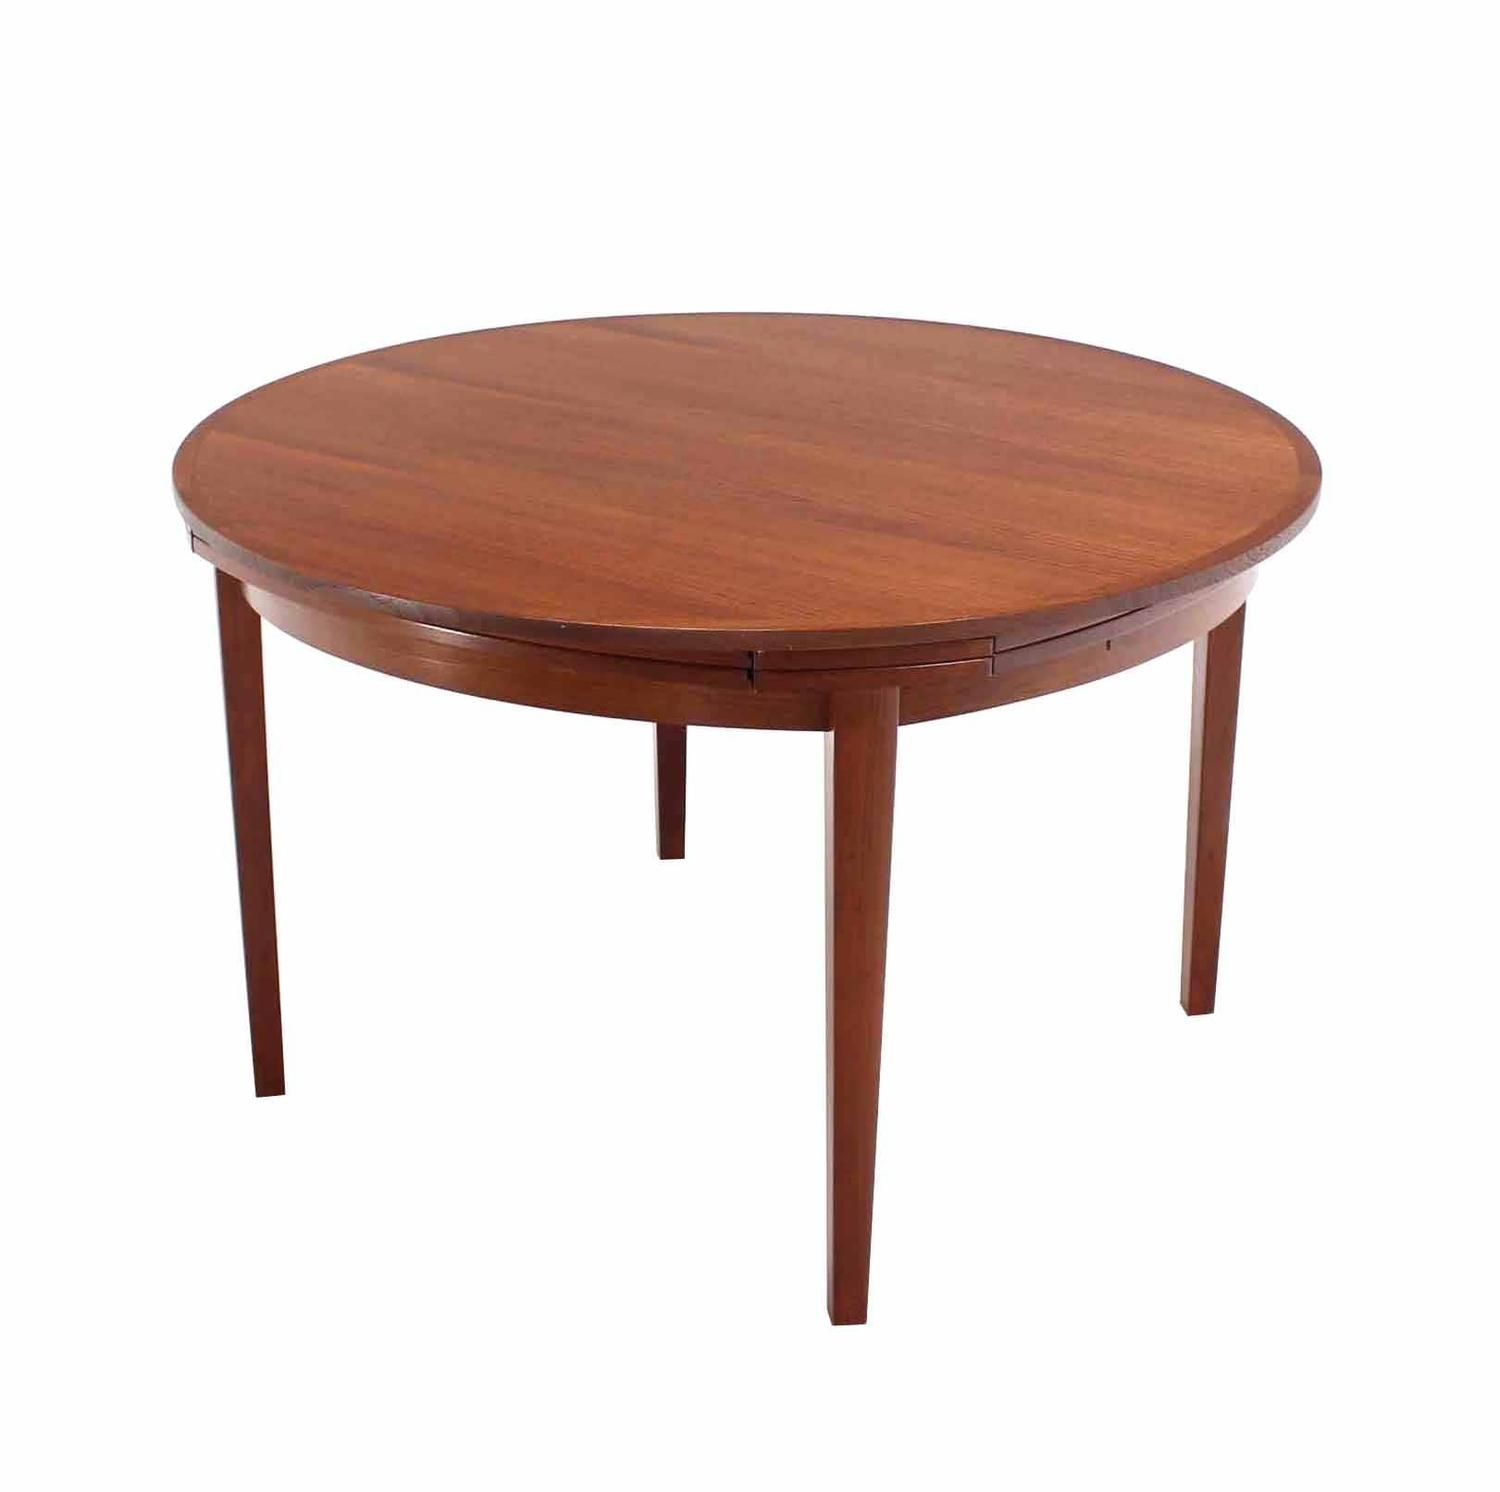 Dänische Möbeldesigner Rare Danish Modern Teak Round Expandable Top Dining Table Der